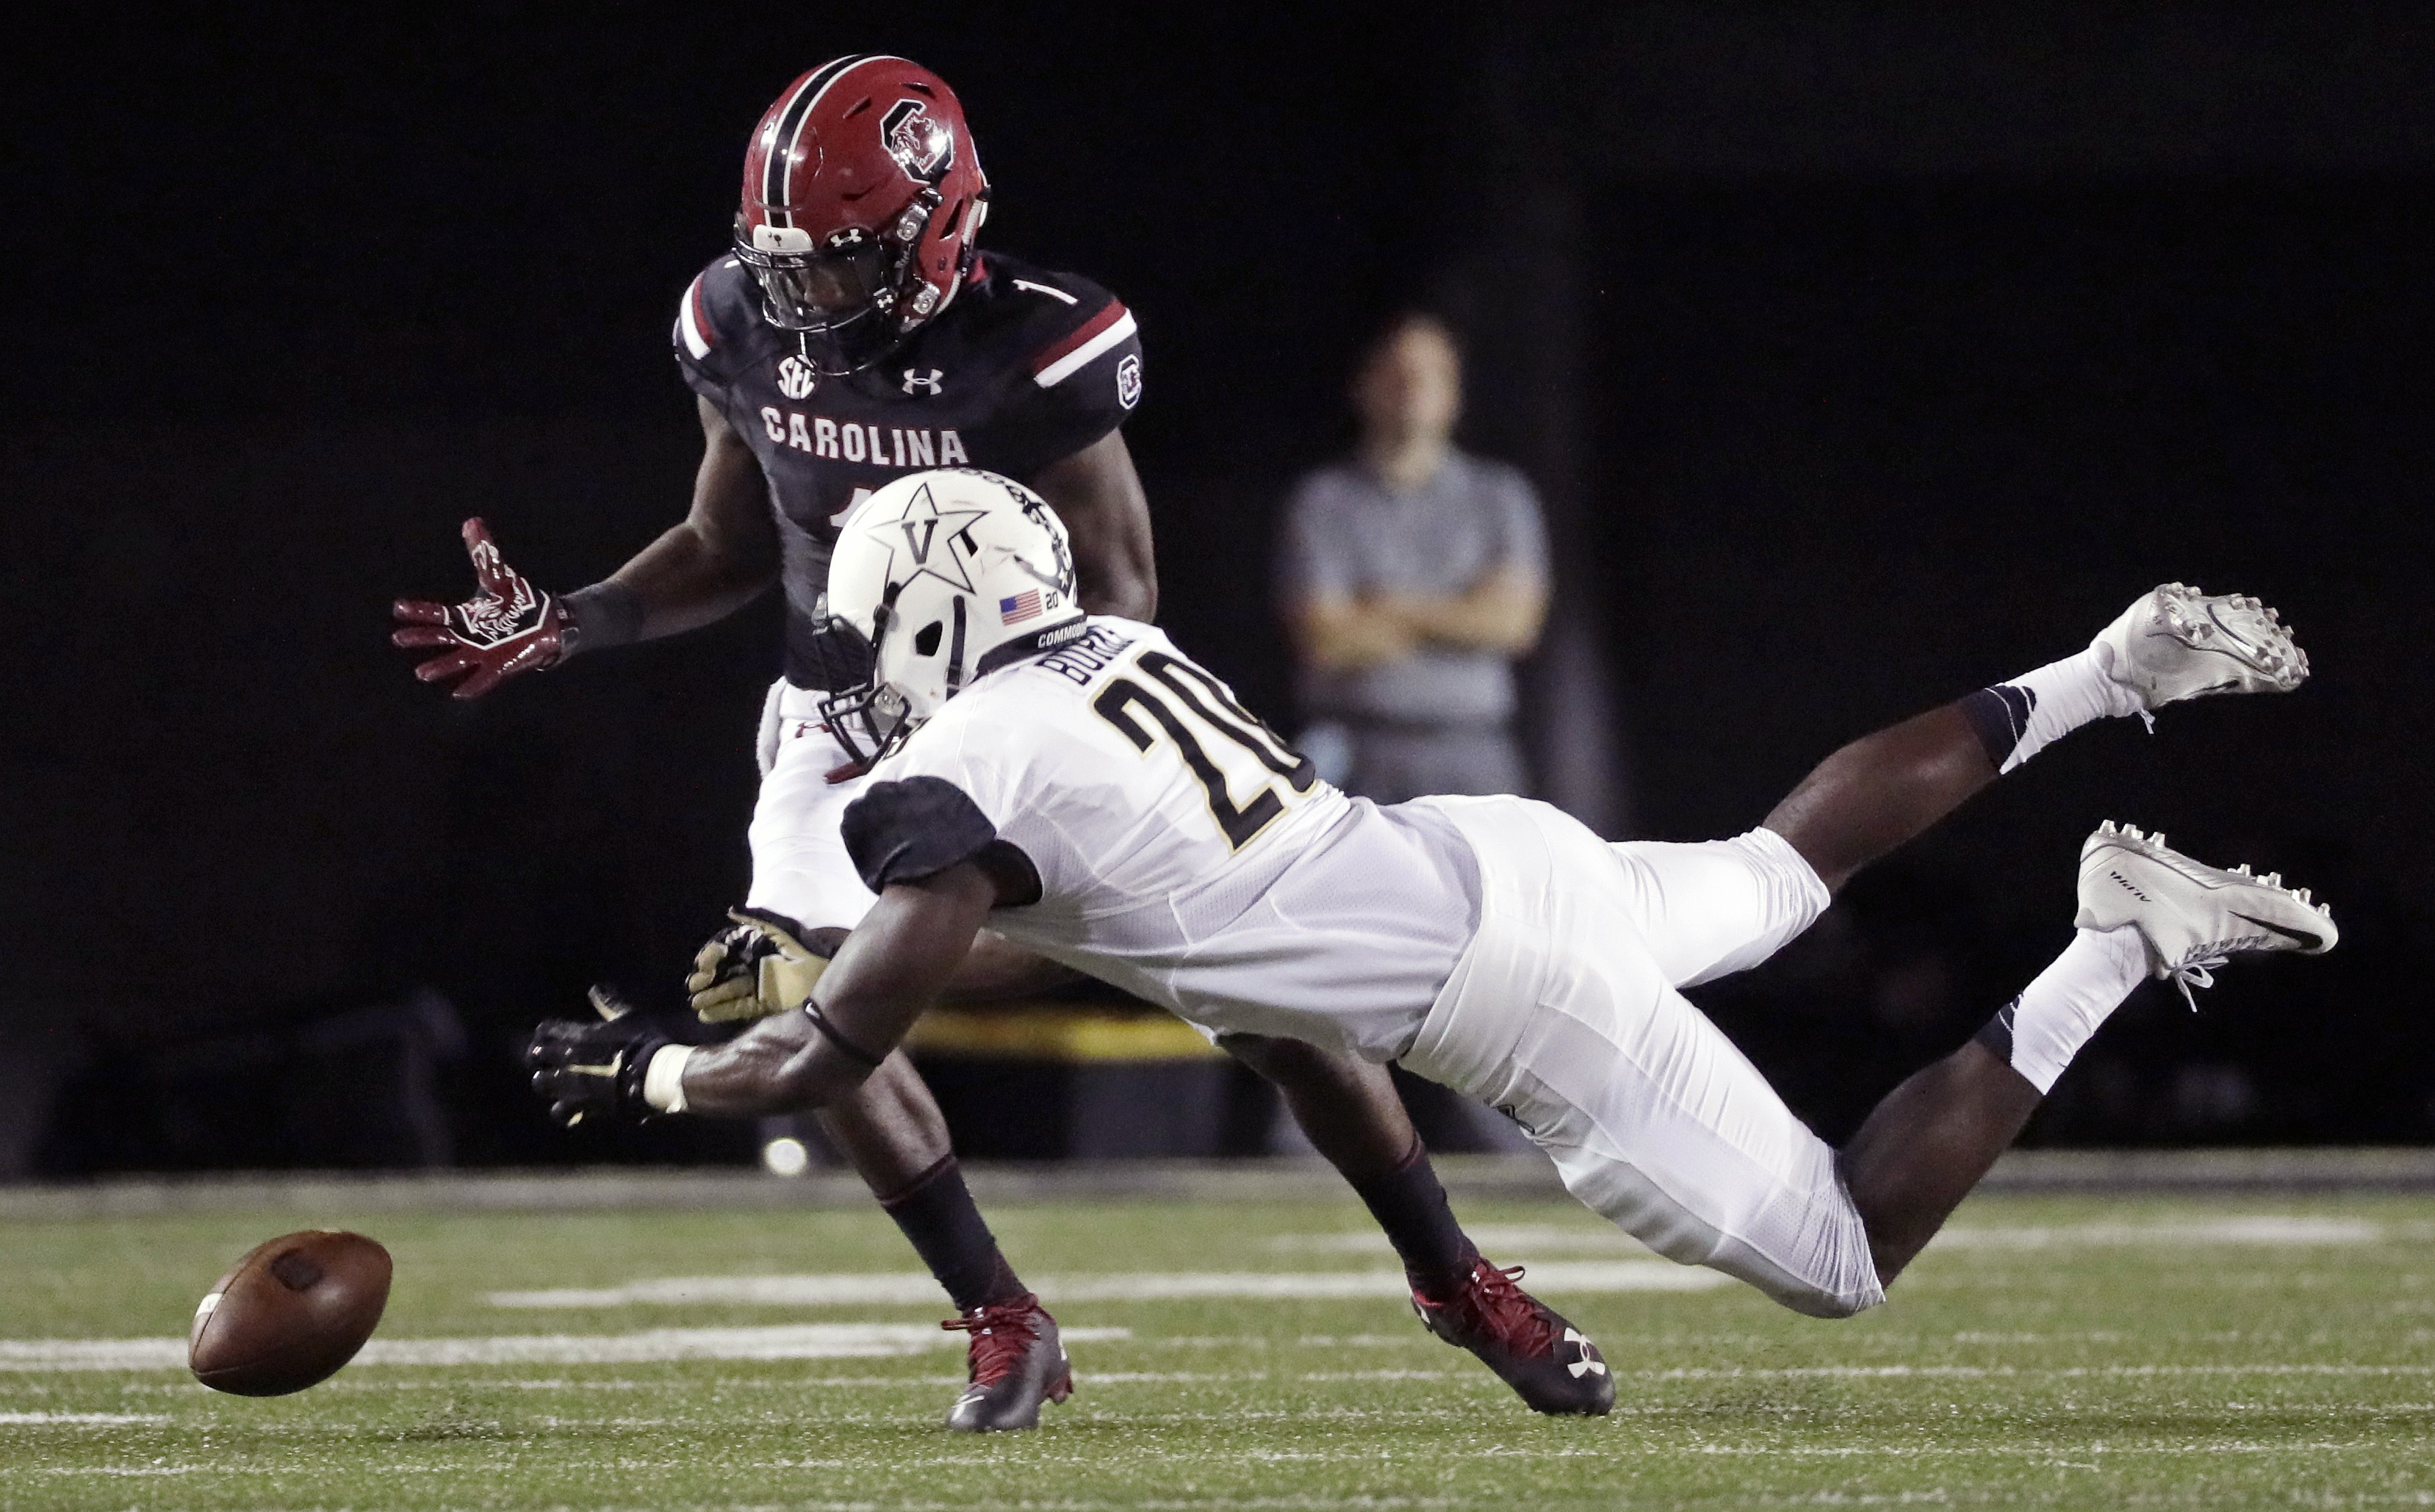 Vanderbilt linebacker Oren Burks (20) breaks up a pass intended for South Carolina wide receiver Deebo Samuel in the first half of an NCAA college football game Thursday, Sept. 1, 2016, in Nashville, Tenn. (AP Photo/Mark Humphrey)